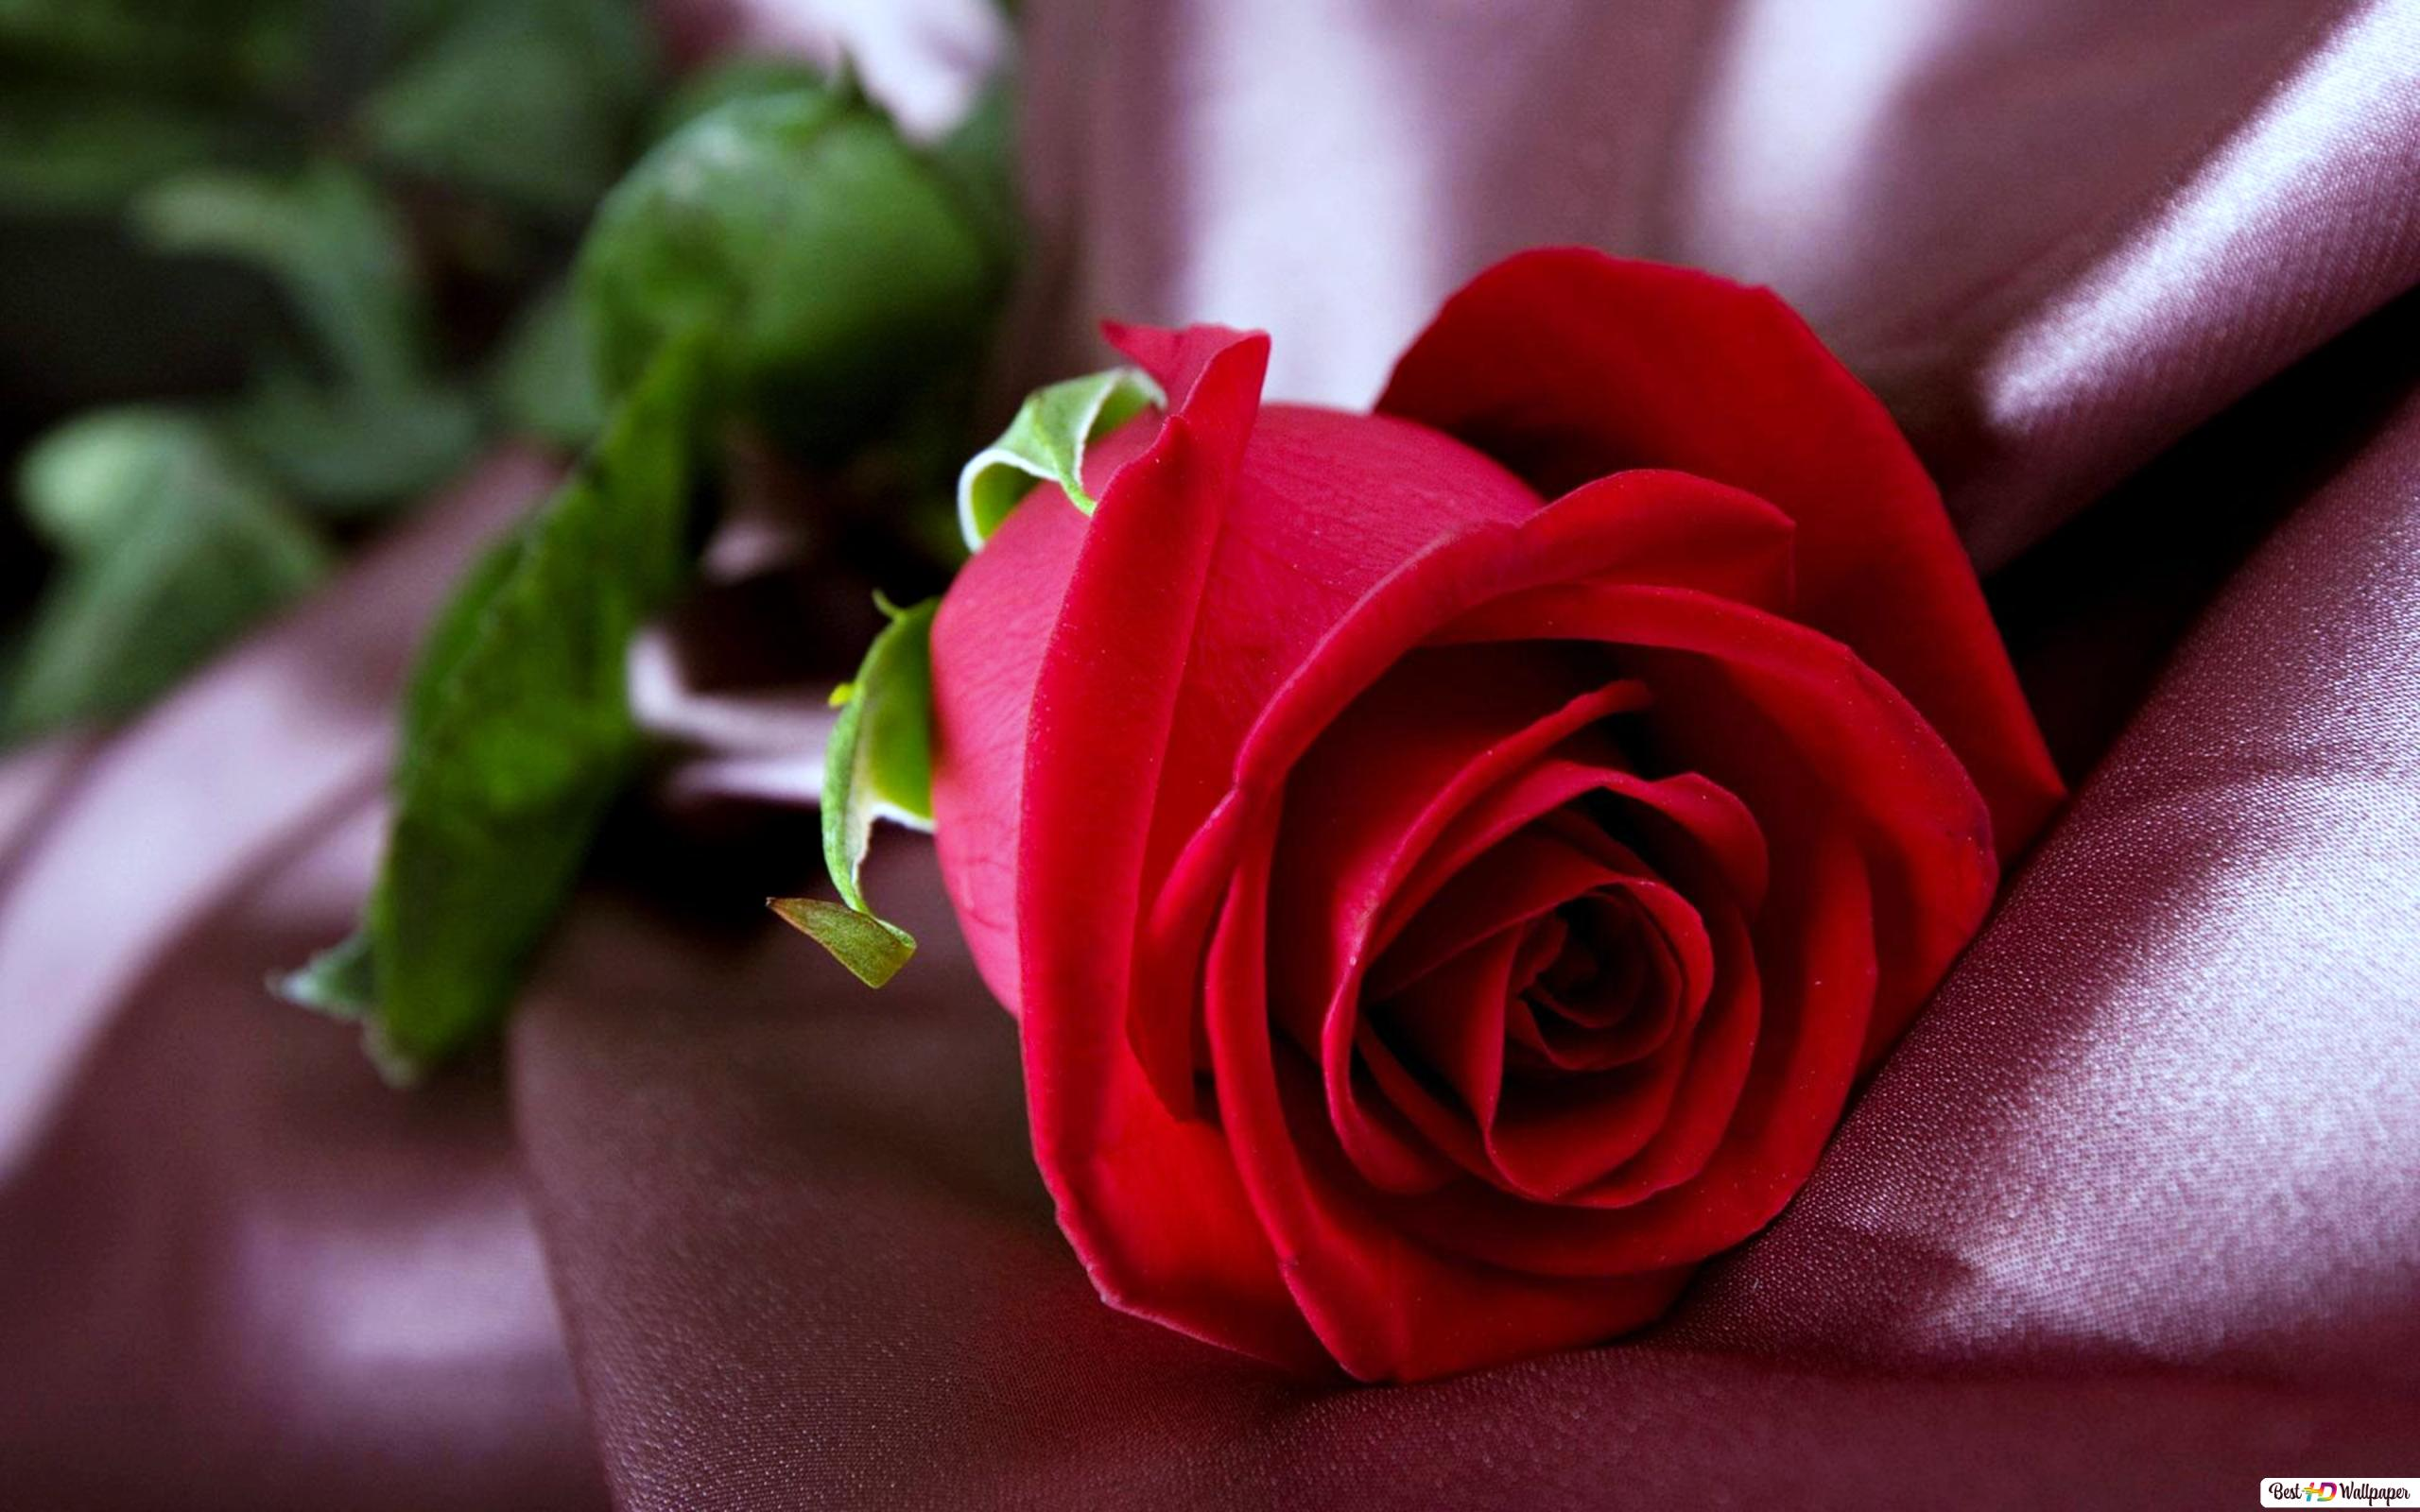 Nature Red Rose Hd Wallpaper Download